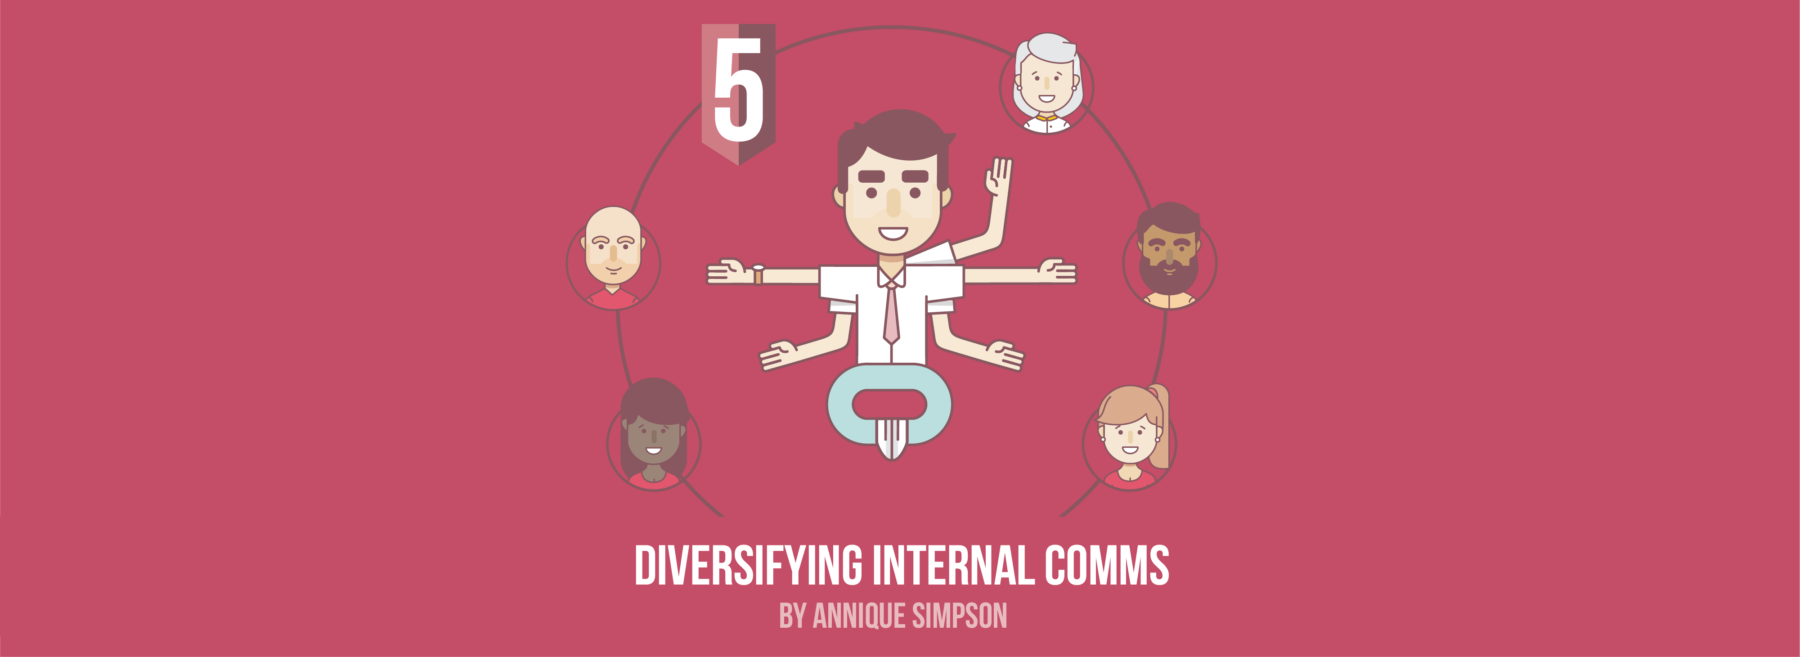 Diversifying Internal Comms